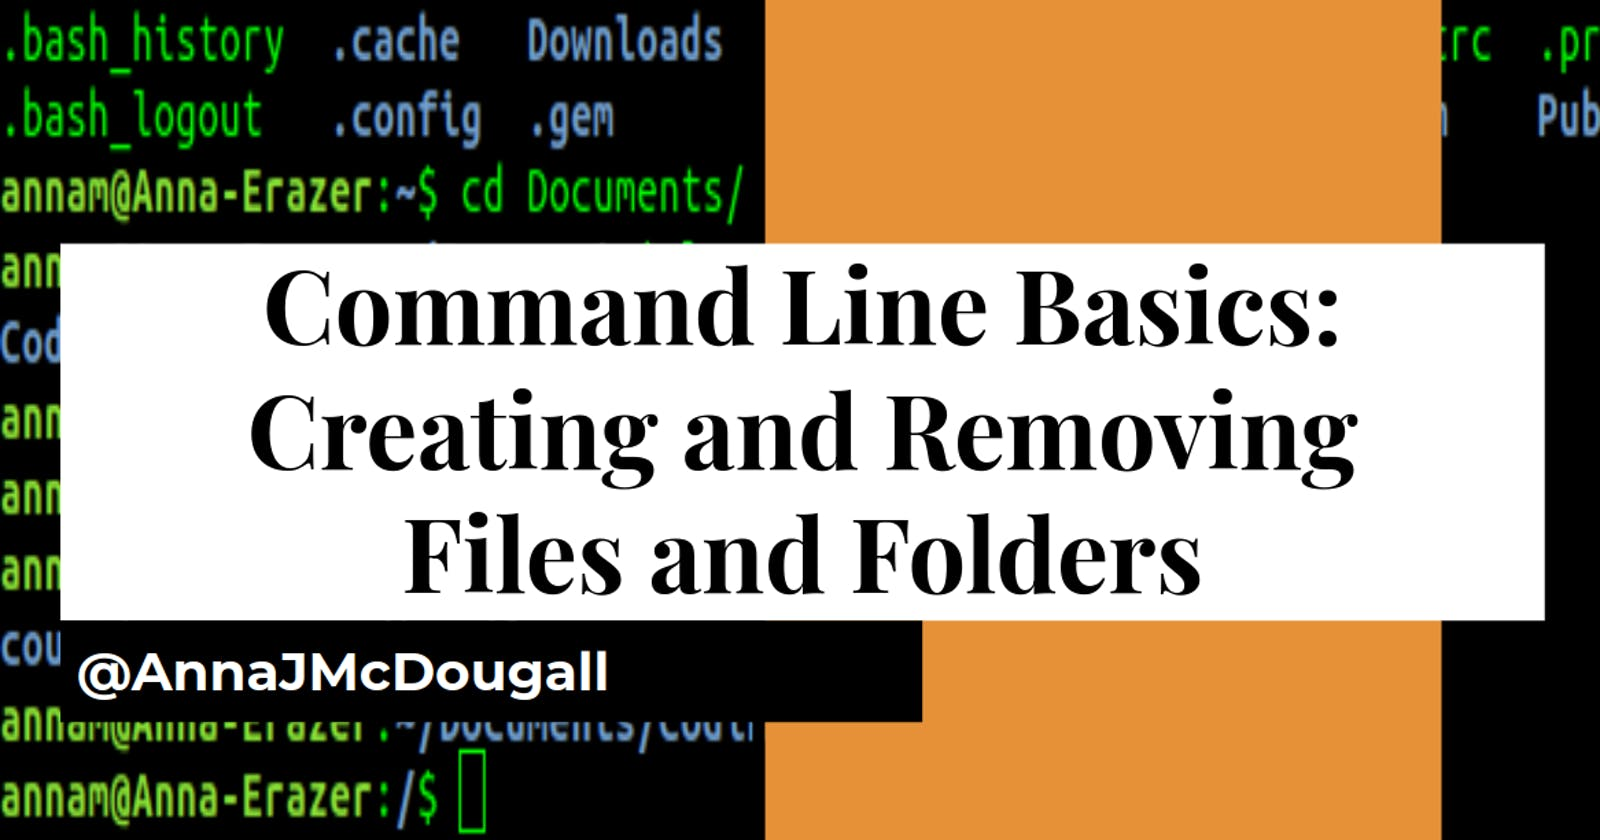 Command Line Basics: Creating and Removing Files and Folders (aka Directories)